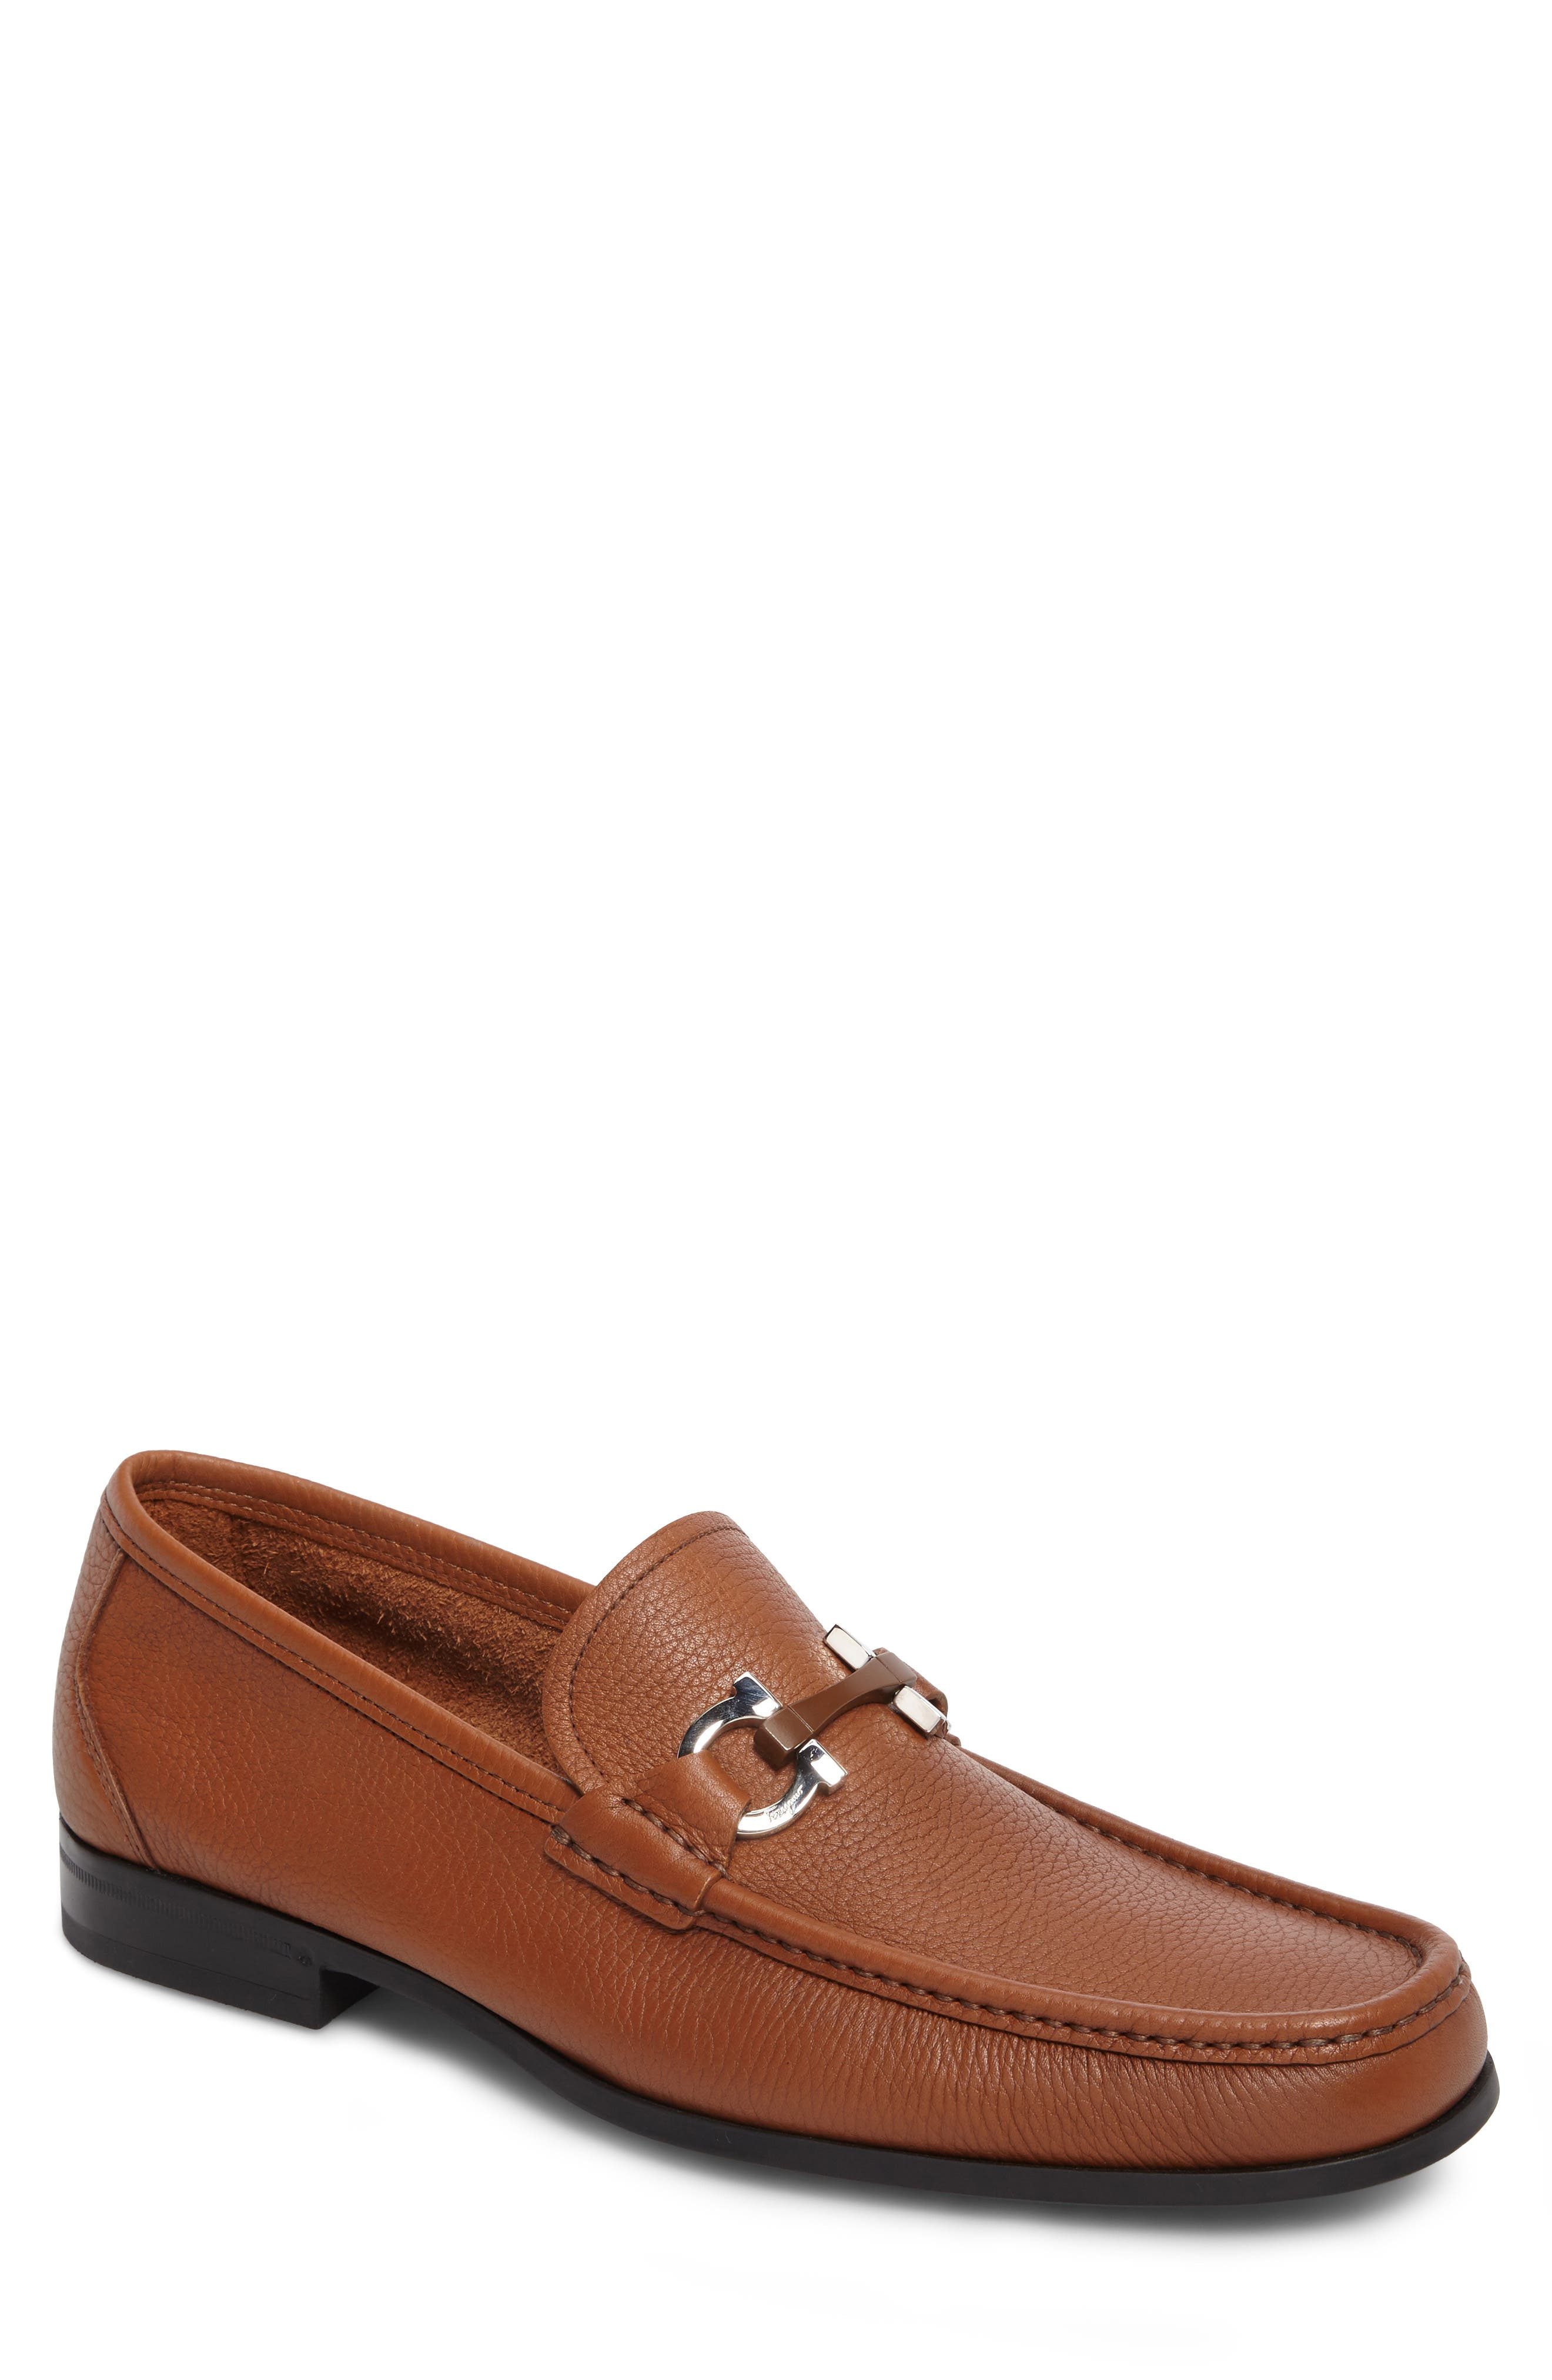 Salvatore Ferragamo Grandioso Bit Loafer Men